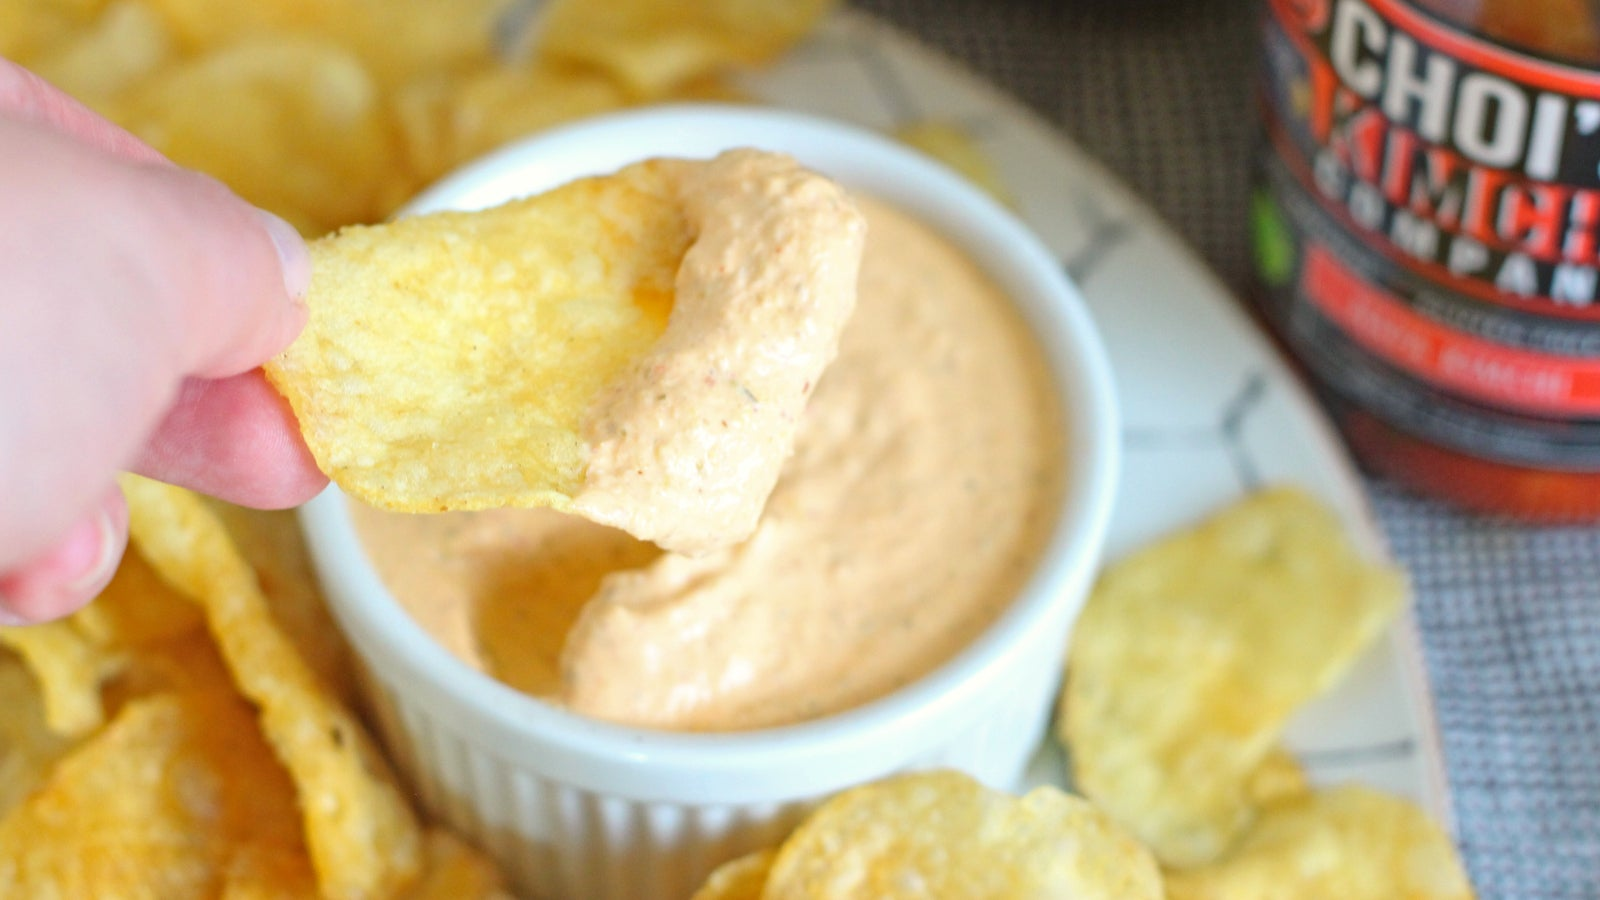 Add These Pantry Items To Sour Cream If You're Into Quick Dips